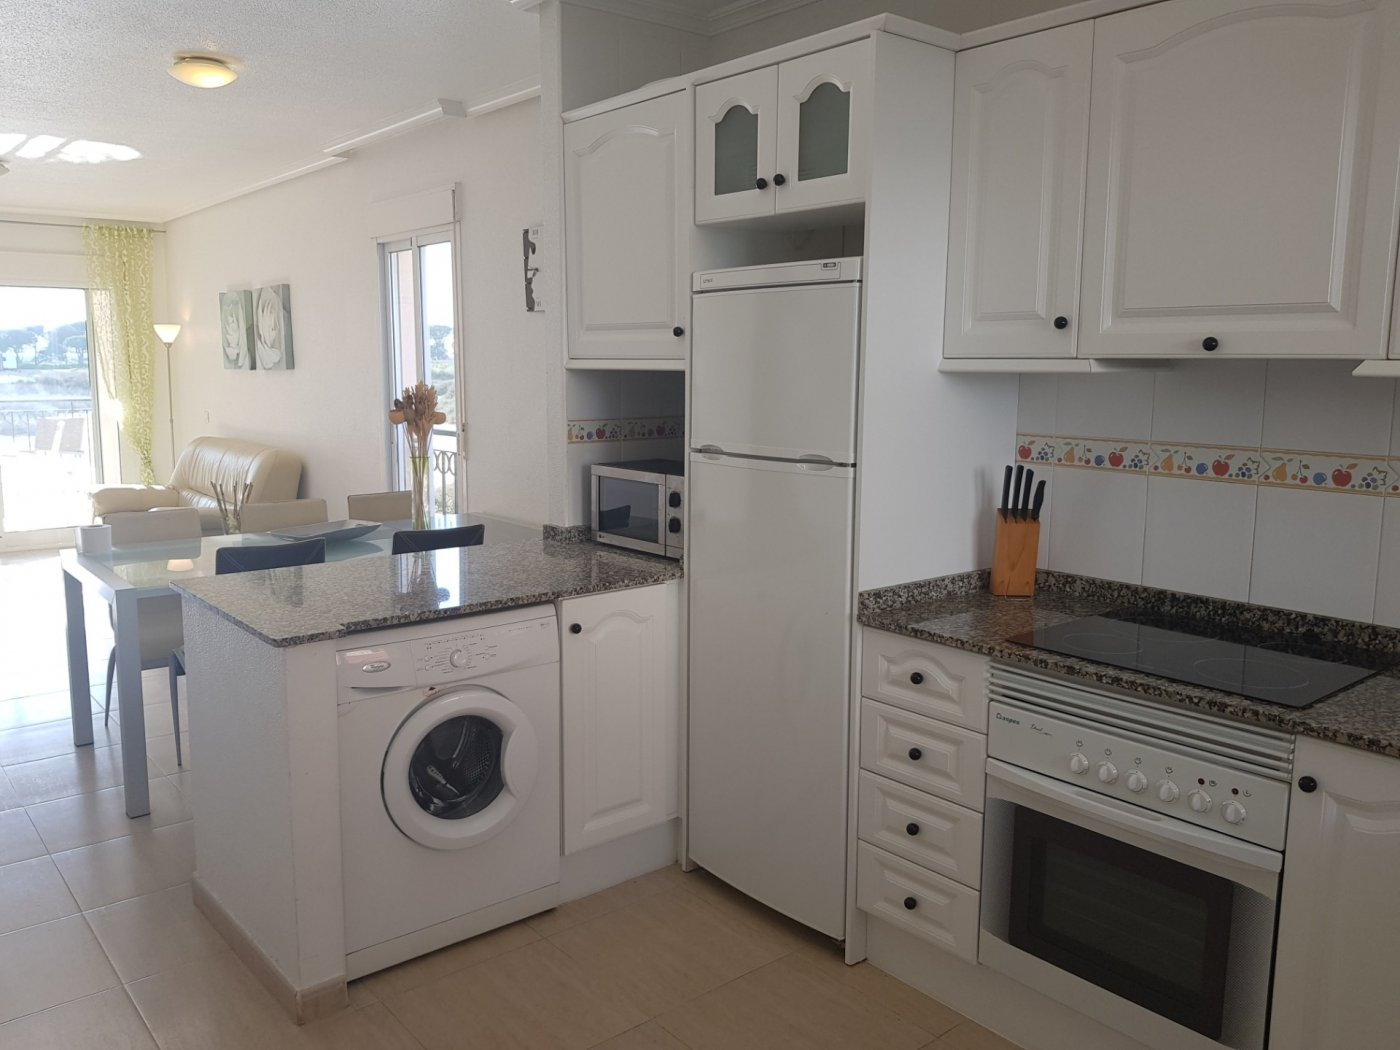 Image 8 Apartment ref 3265-03205 for sale in San Blas Spain - Quality Homes Costa Cálida